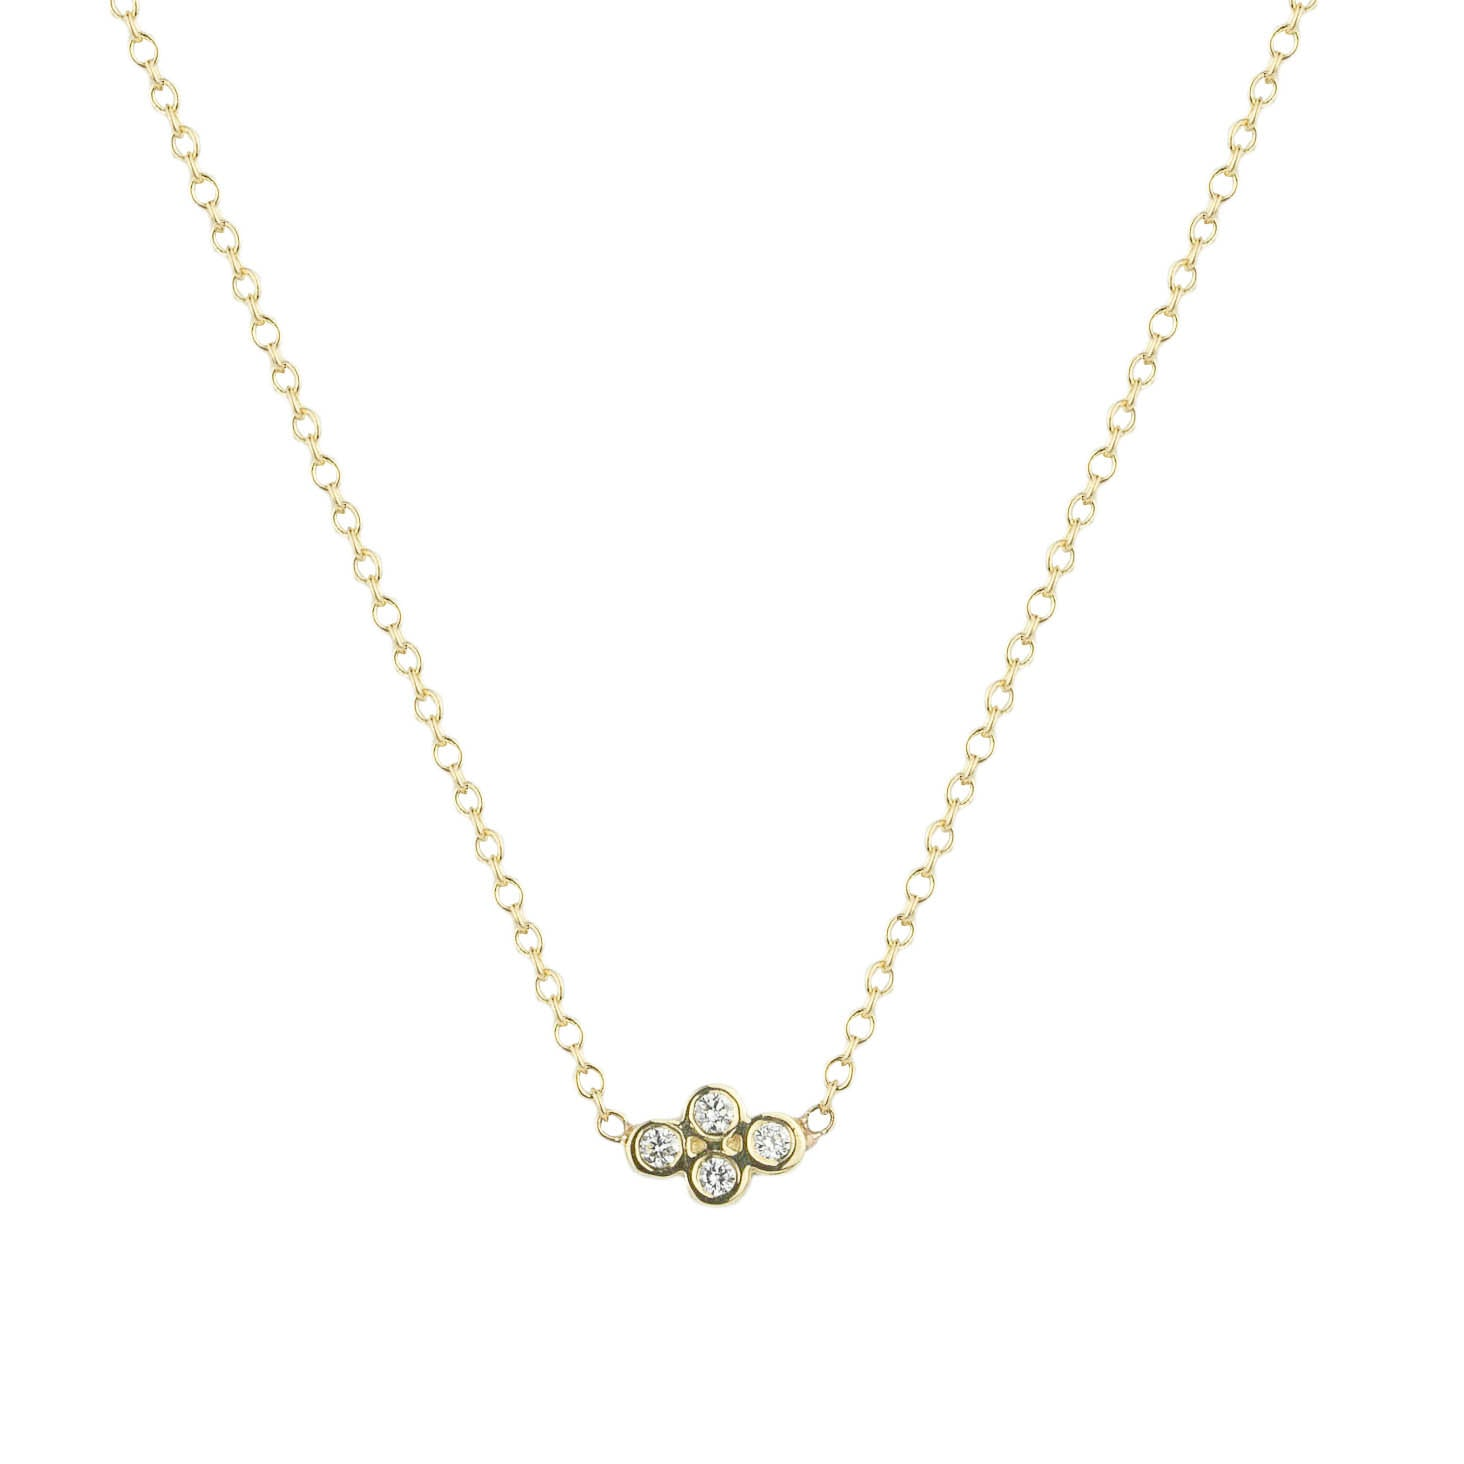 Quad Diamond Necklace